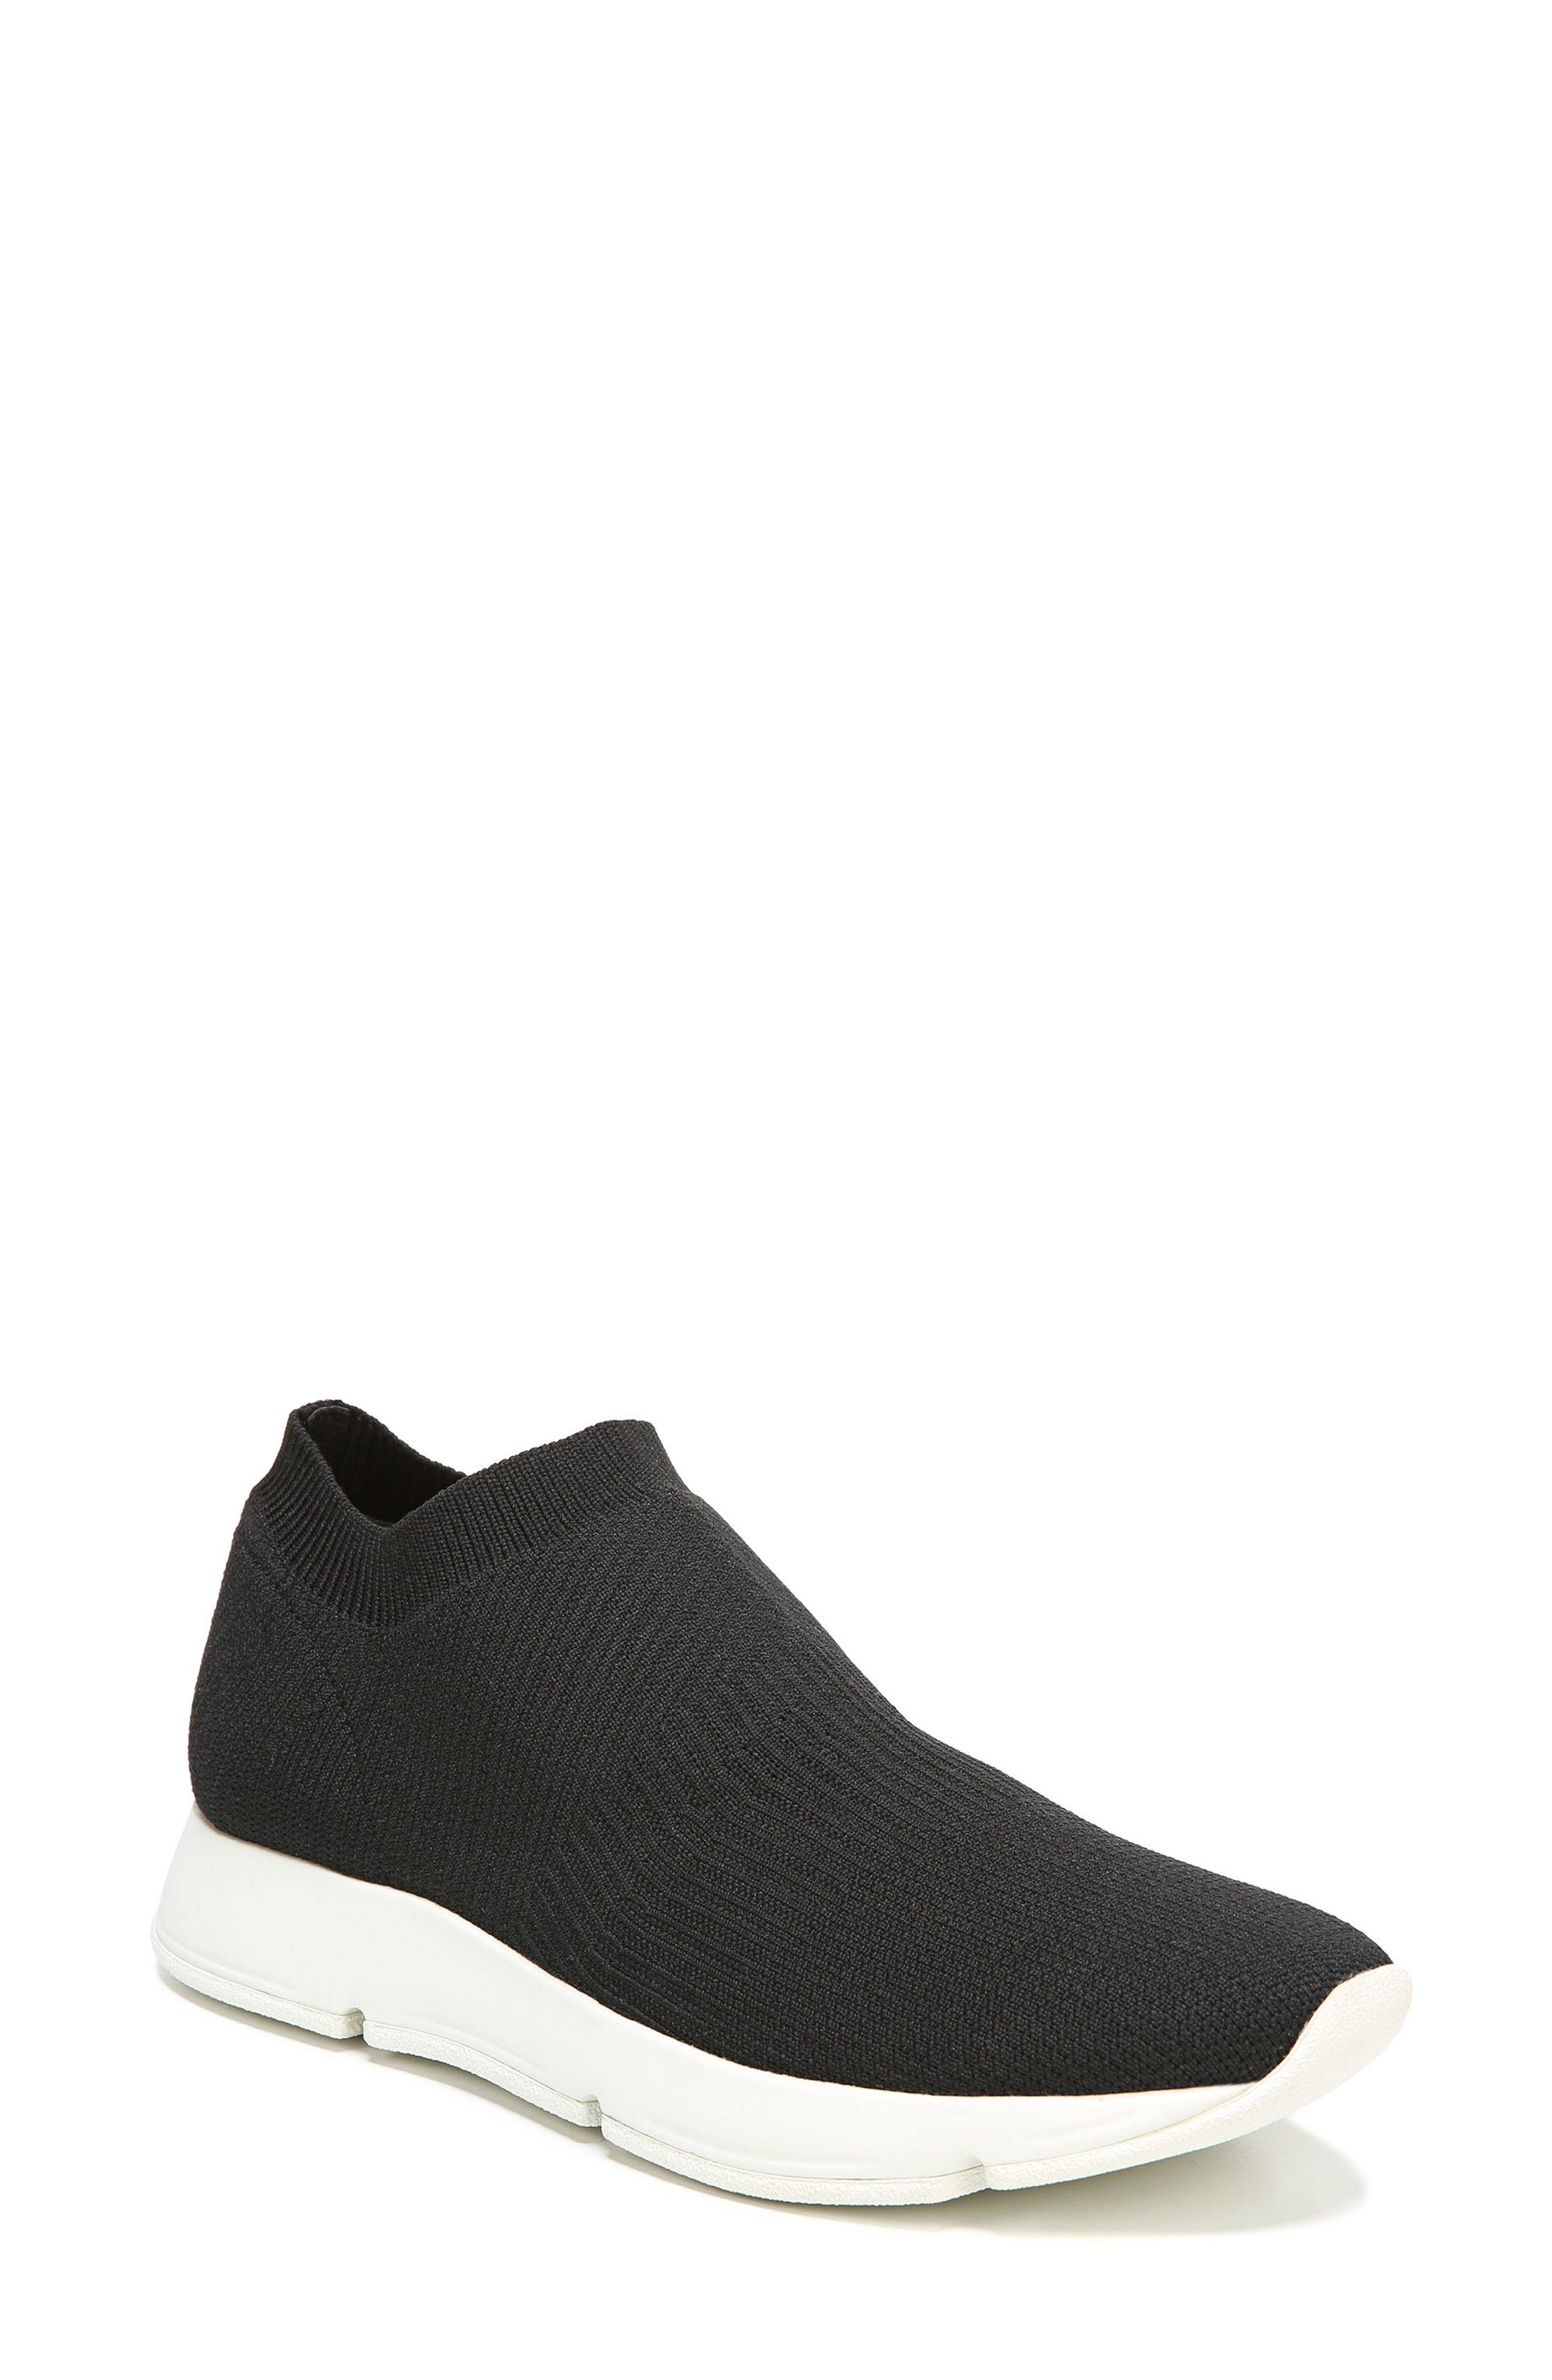 Theroux Slip-On Knit Sneaker,                         Main,                         color,